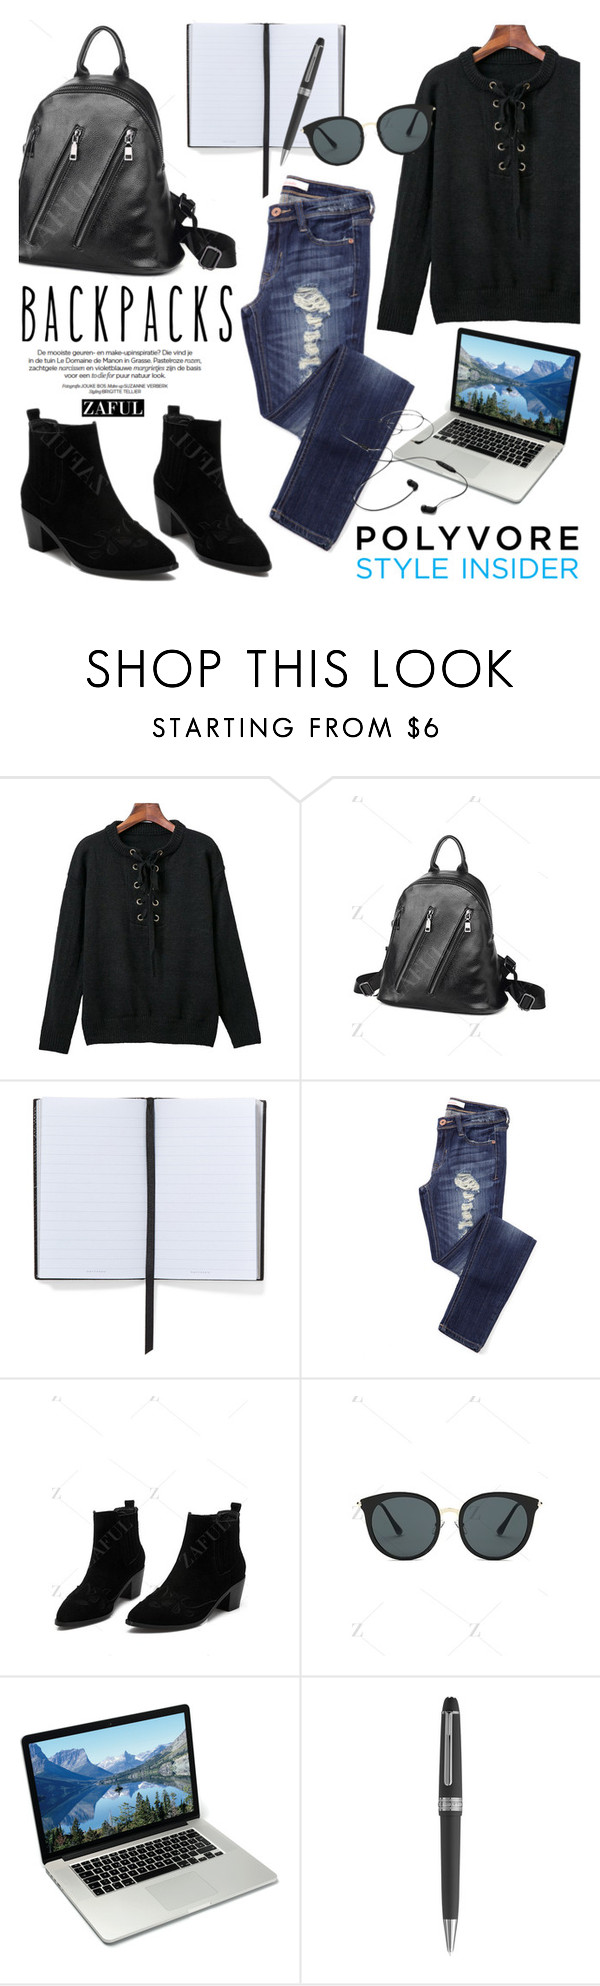 """http://www.zaful.com/?lkid=16334"" by helenevlacho ❤ liked on Polyvore featuring Smythson, Montblanc, AIAIAI, backpacks, contestentry, zaful and PVStyleInsiderContest"